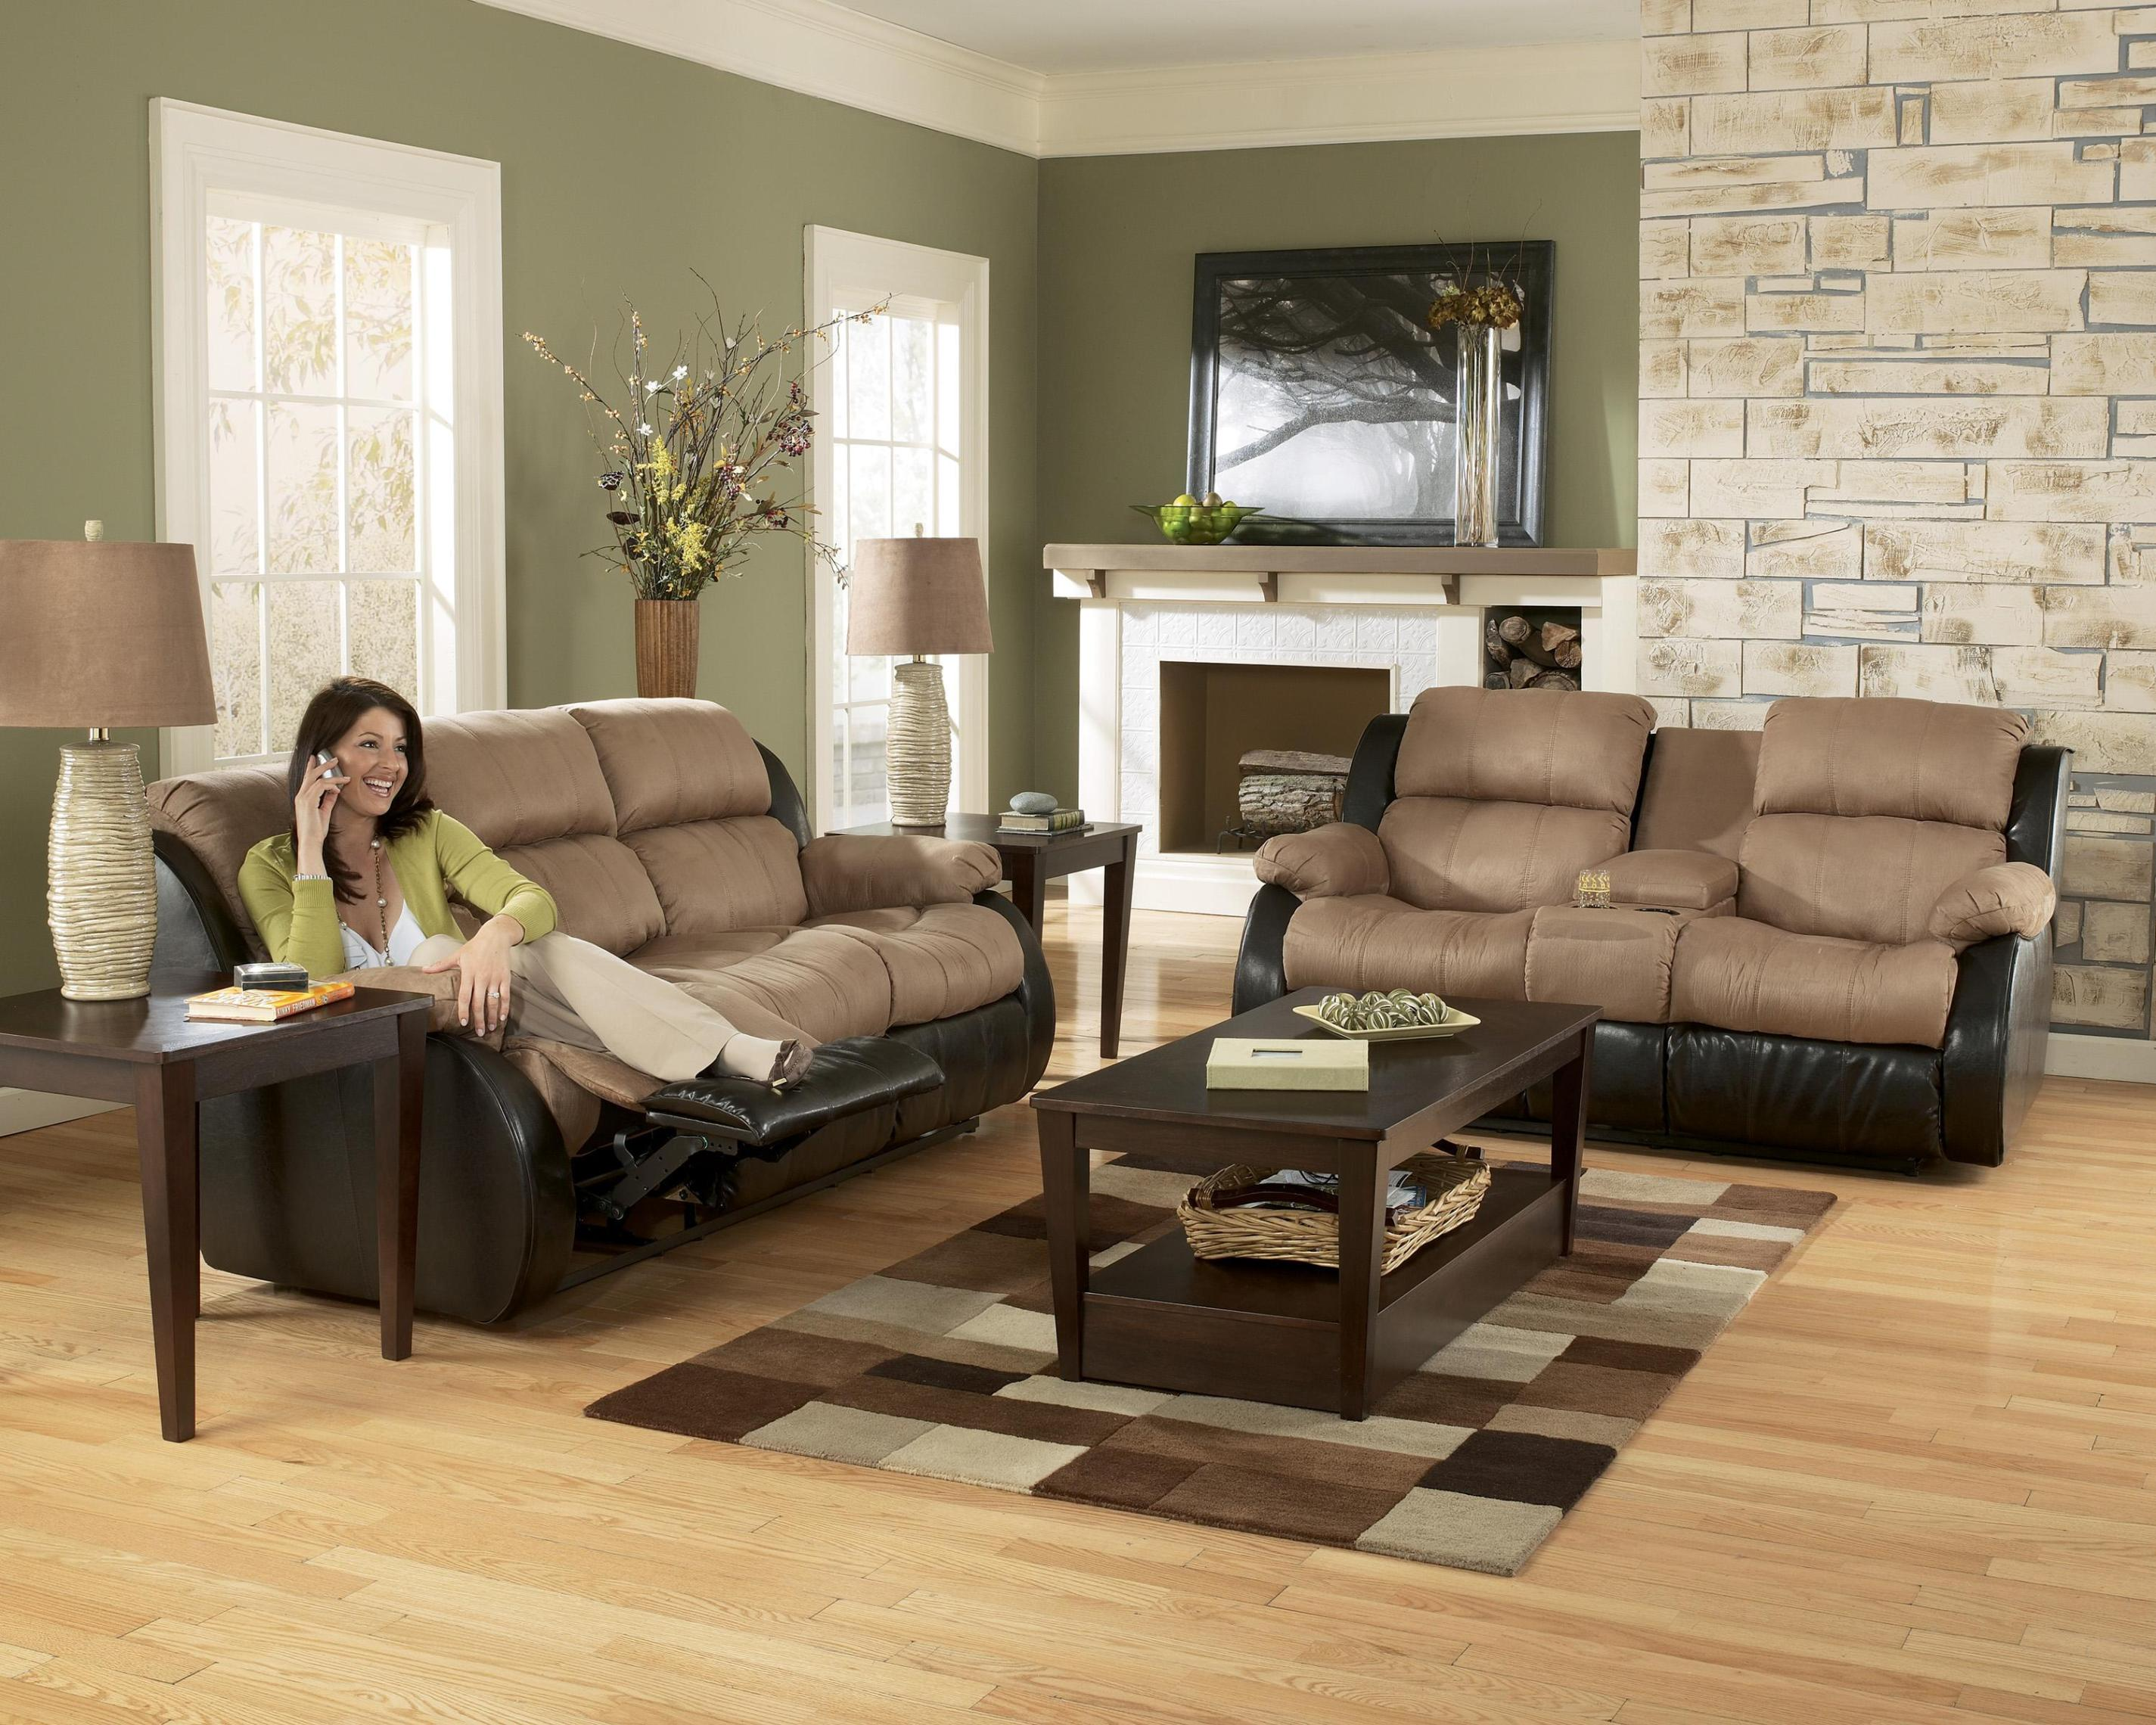 Image of: Slipcover For Reclining Couch